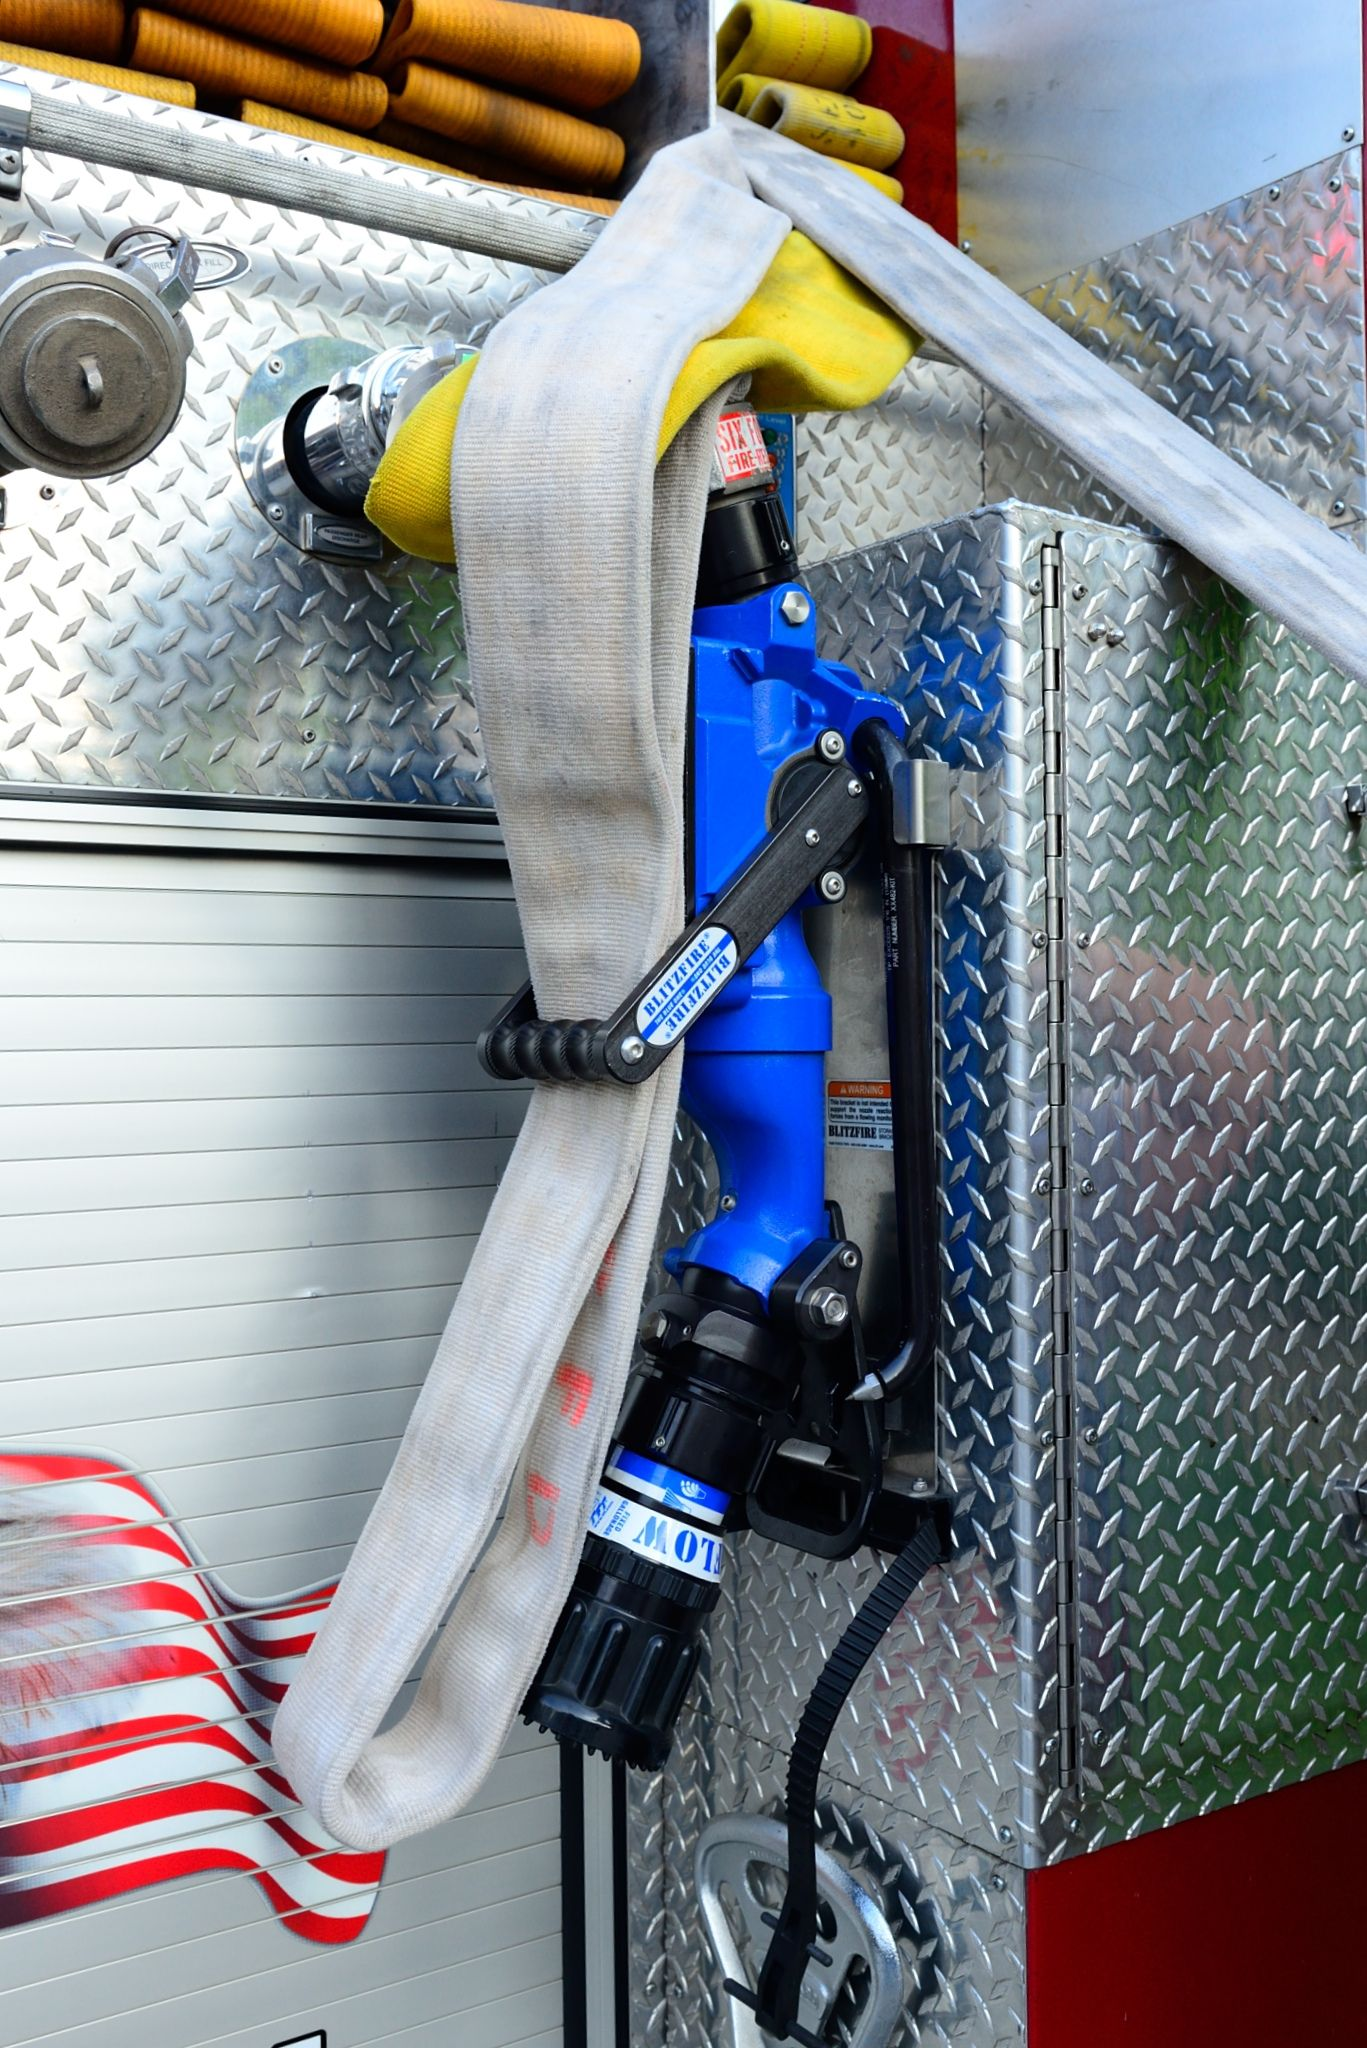 Blitz Nozzle Deployment | The blitz, Fire apparatus